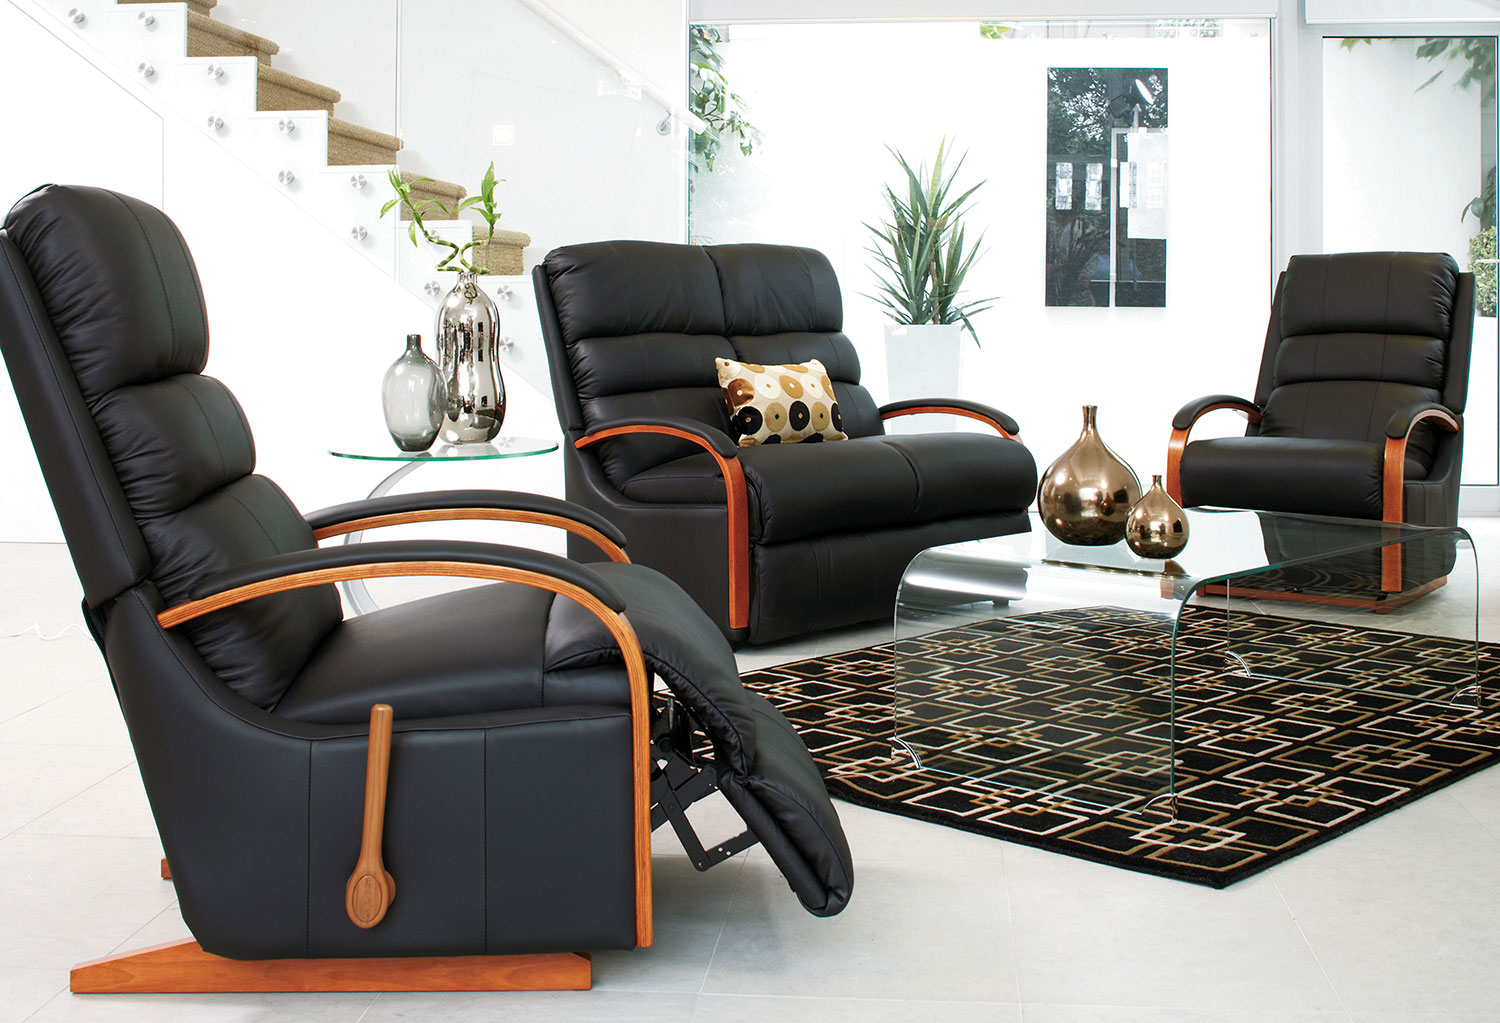 lazy boy chairs nz small bean bag chair charleston 3 piece leather recliner lounge suite by la z